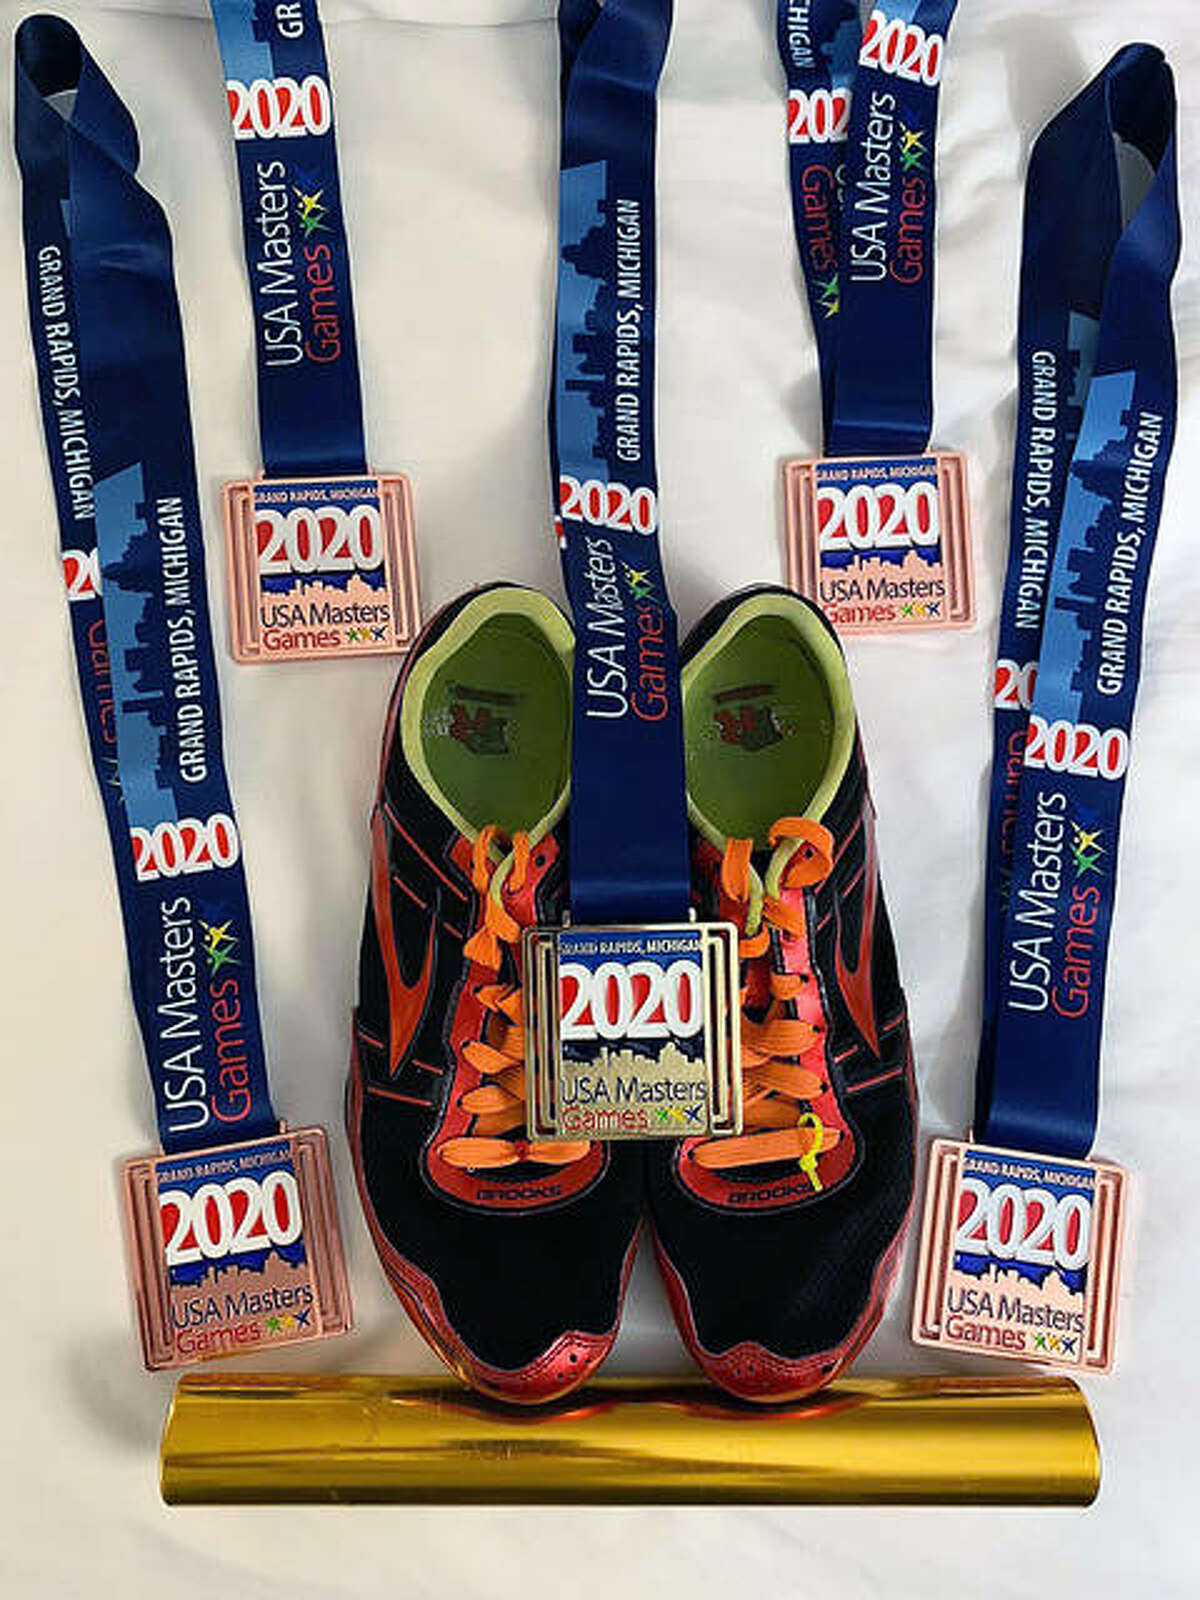 Some of the medals, as well as shoes and relay baton, from Mike Young's Saturday performances at the USA Masters Games in Grand Rapids, Mich.